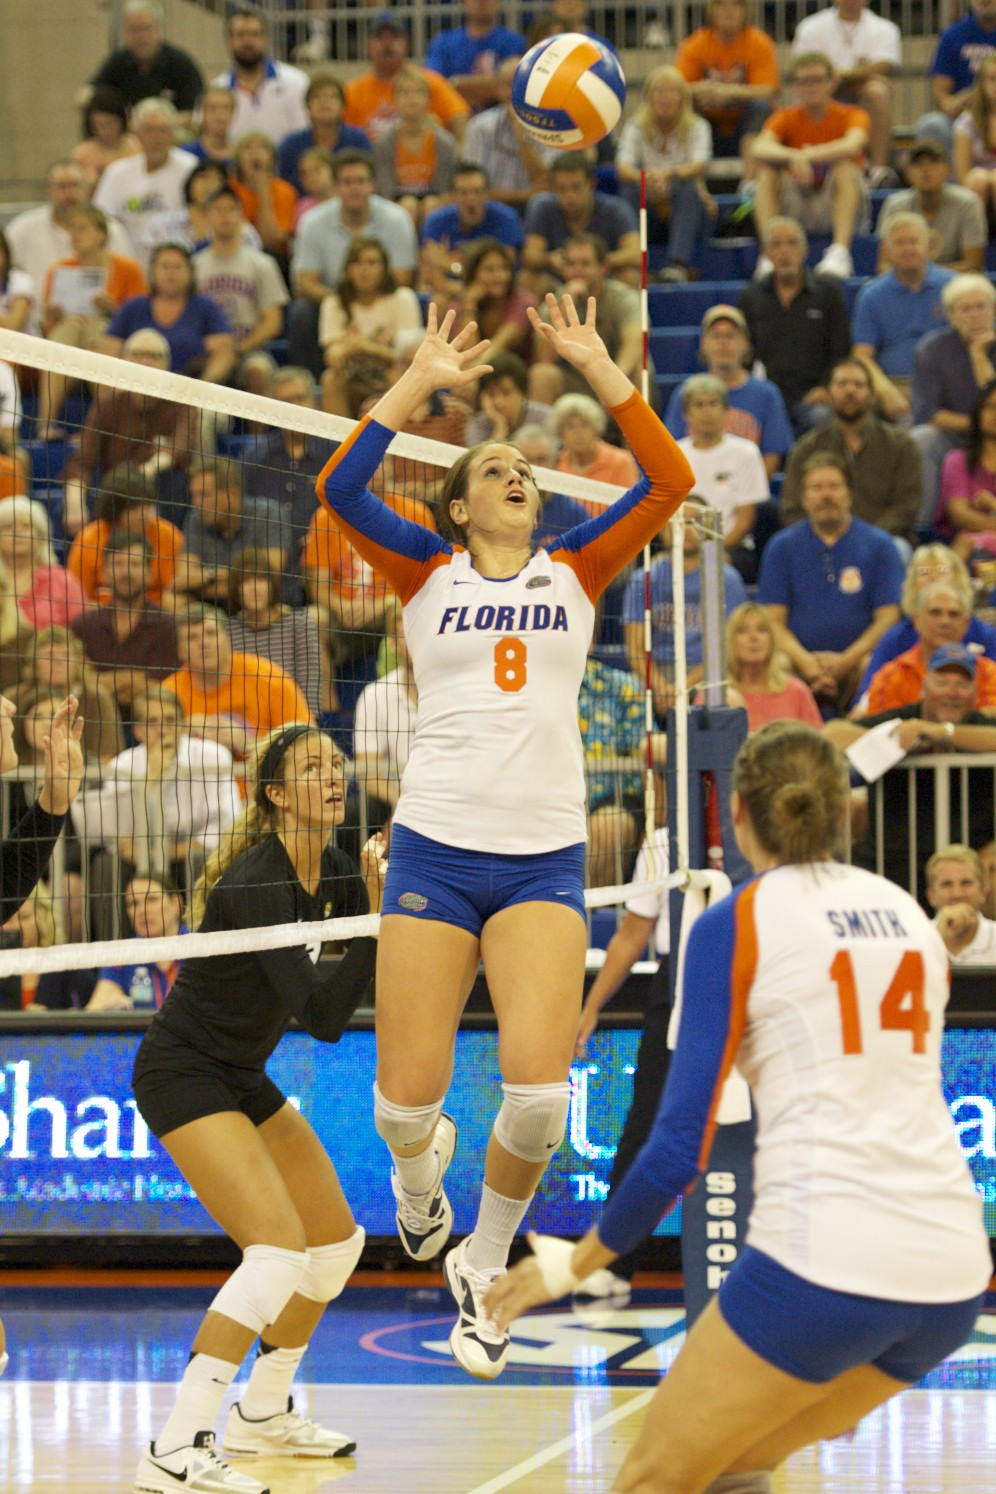 Number 8 of the Florida Gators, Taylor Brauneis, sets her teammate in hopes of a kill for her team.